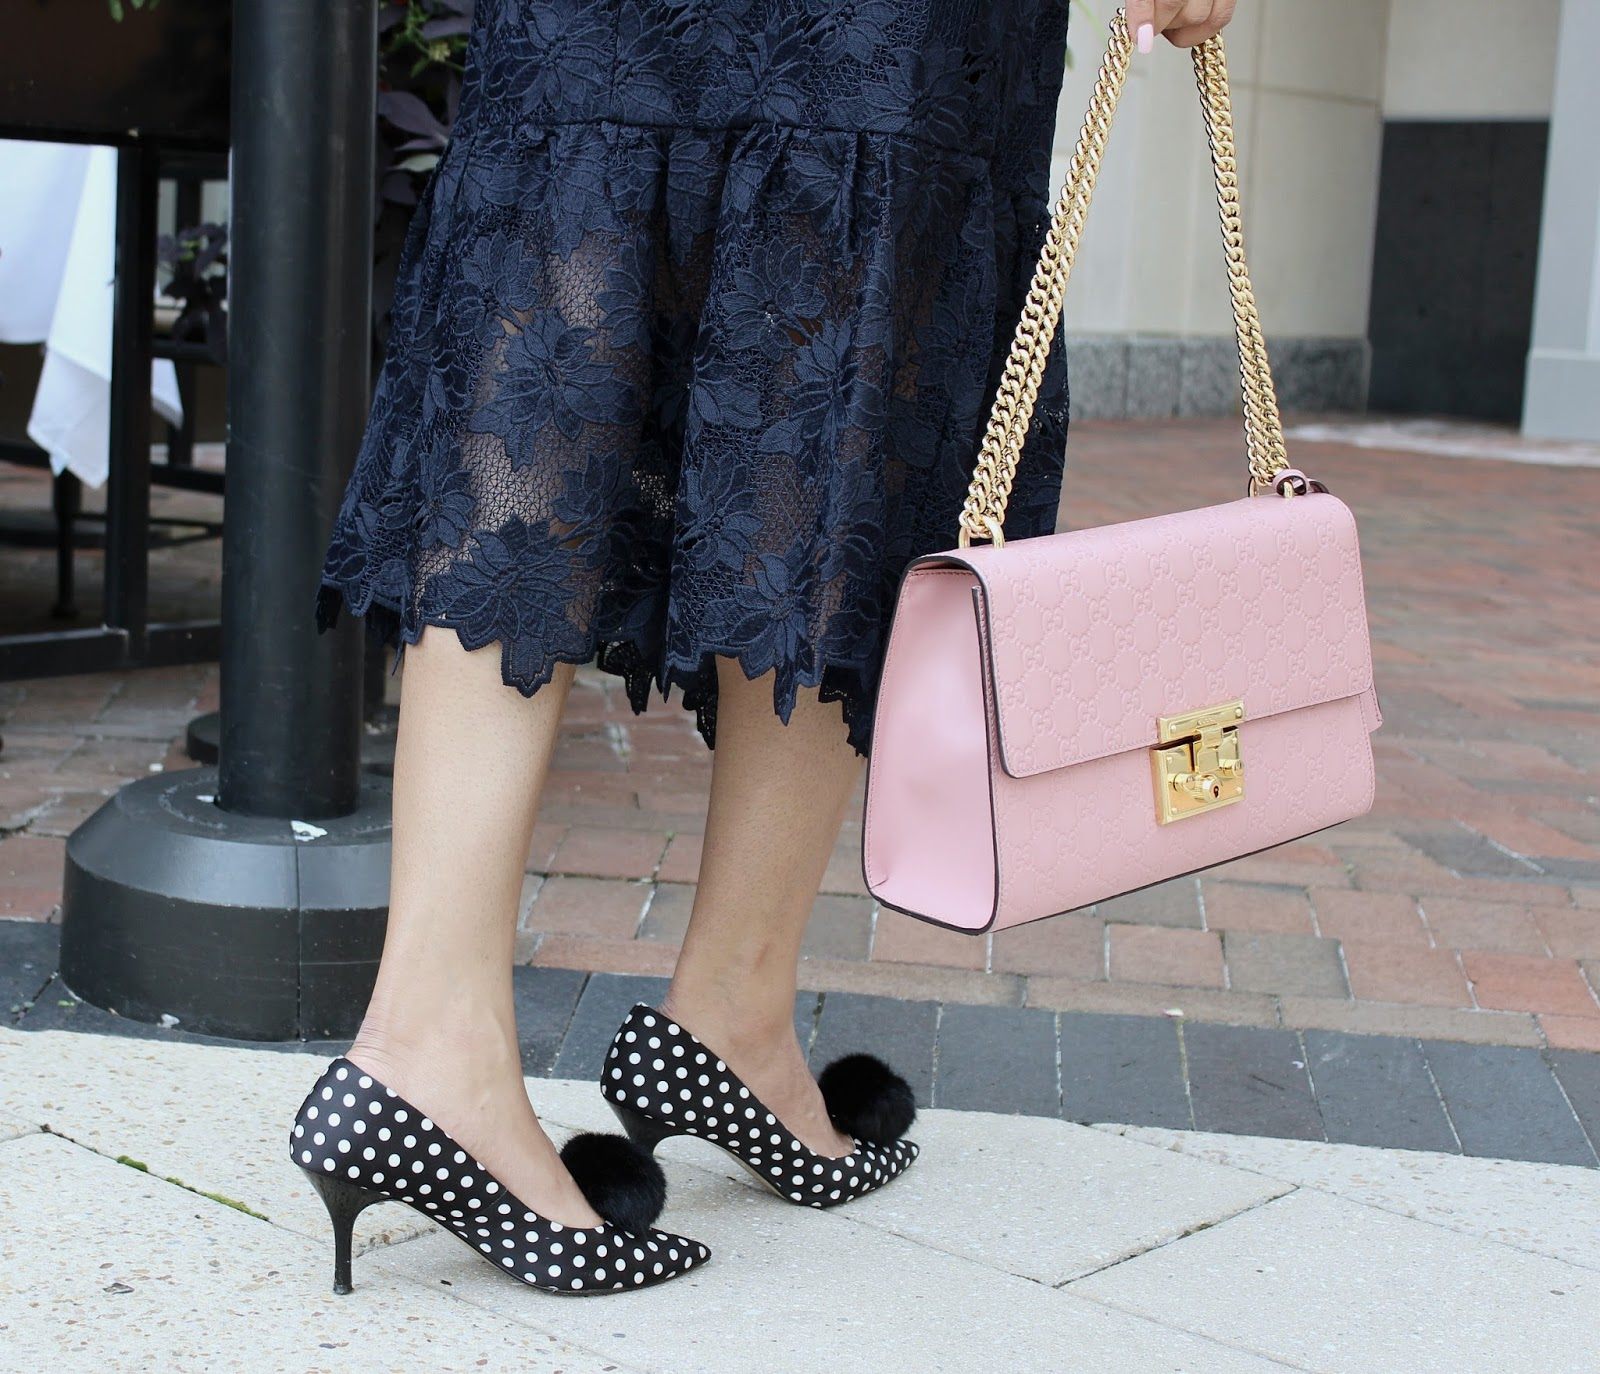 feel like a million bucks, banana republic lace dress, pom pom heels, polka dot heels, DIY, gucci bag, gap turtleneck, daniel wellington Bondi watch, street styl, fall style, myriad musings